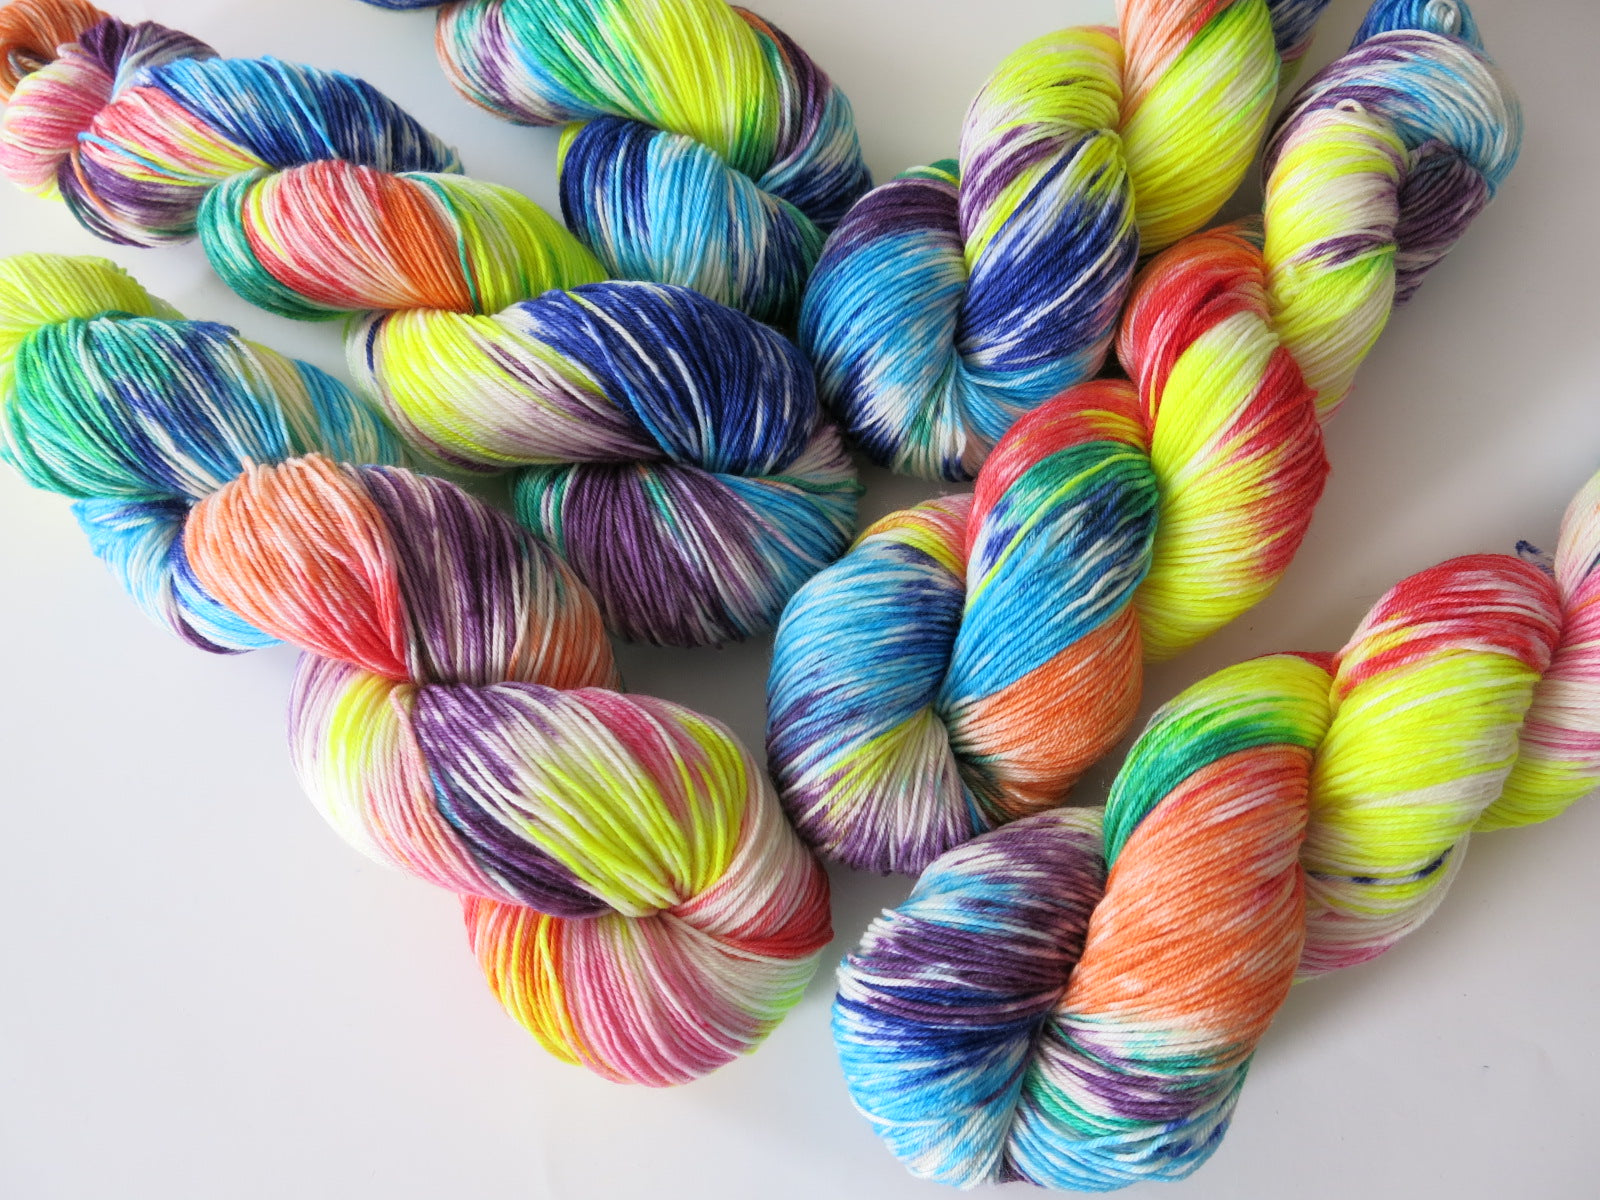 100g skeins rainbow painted wool for knitting and crochet